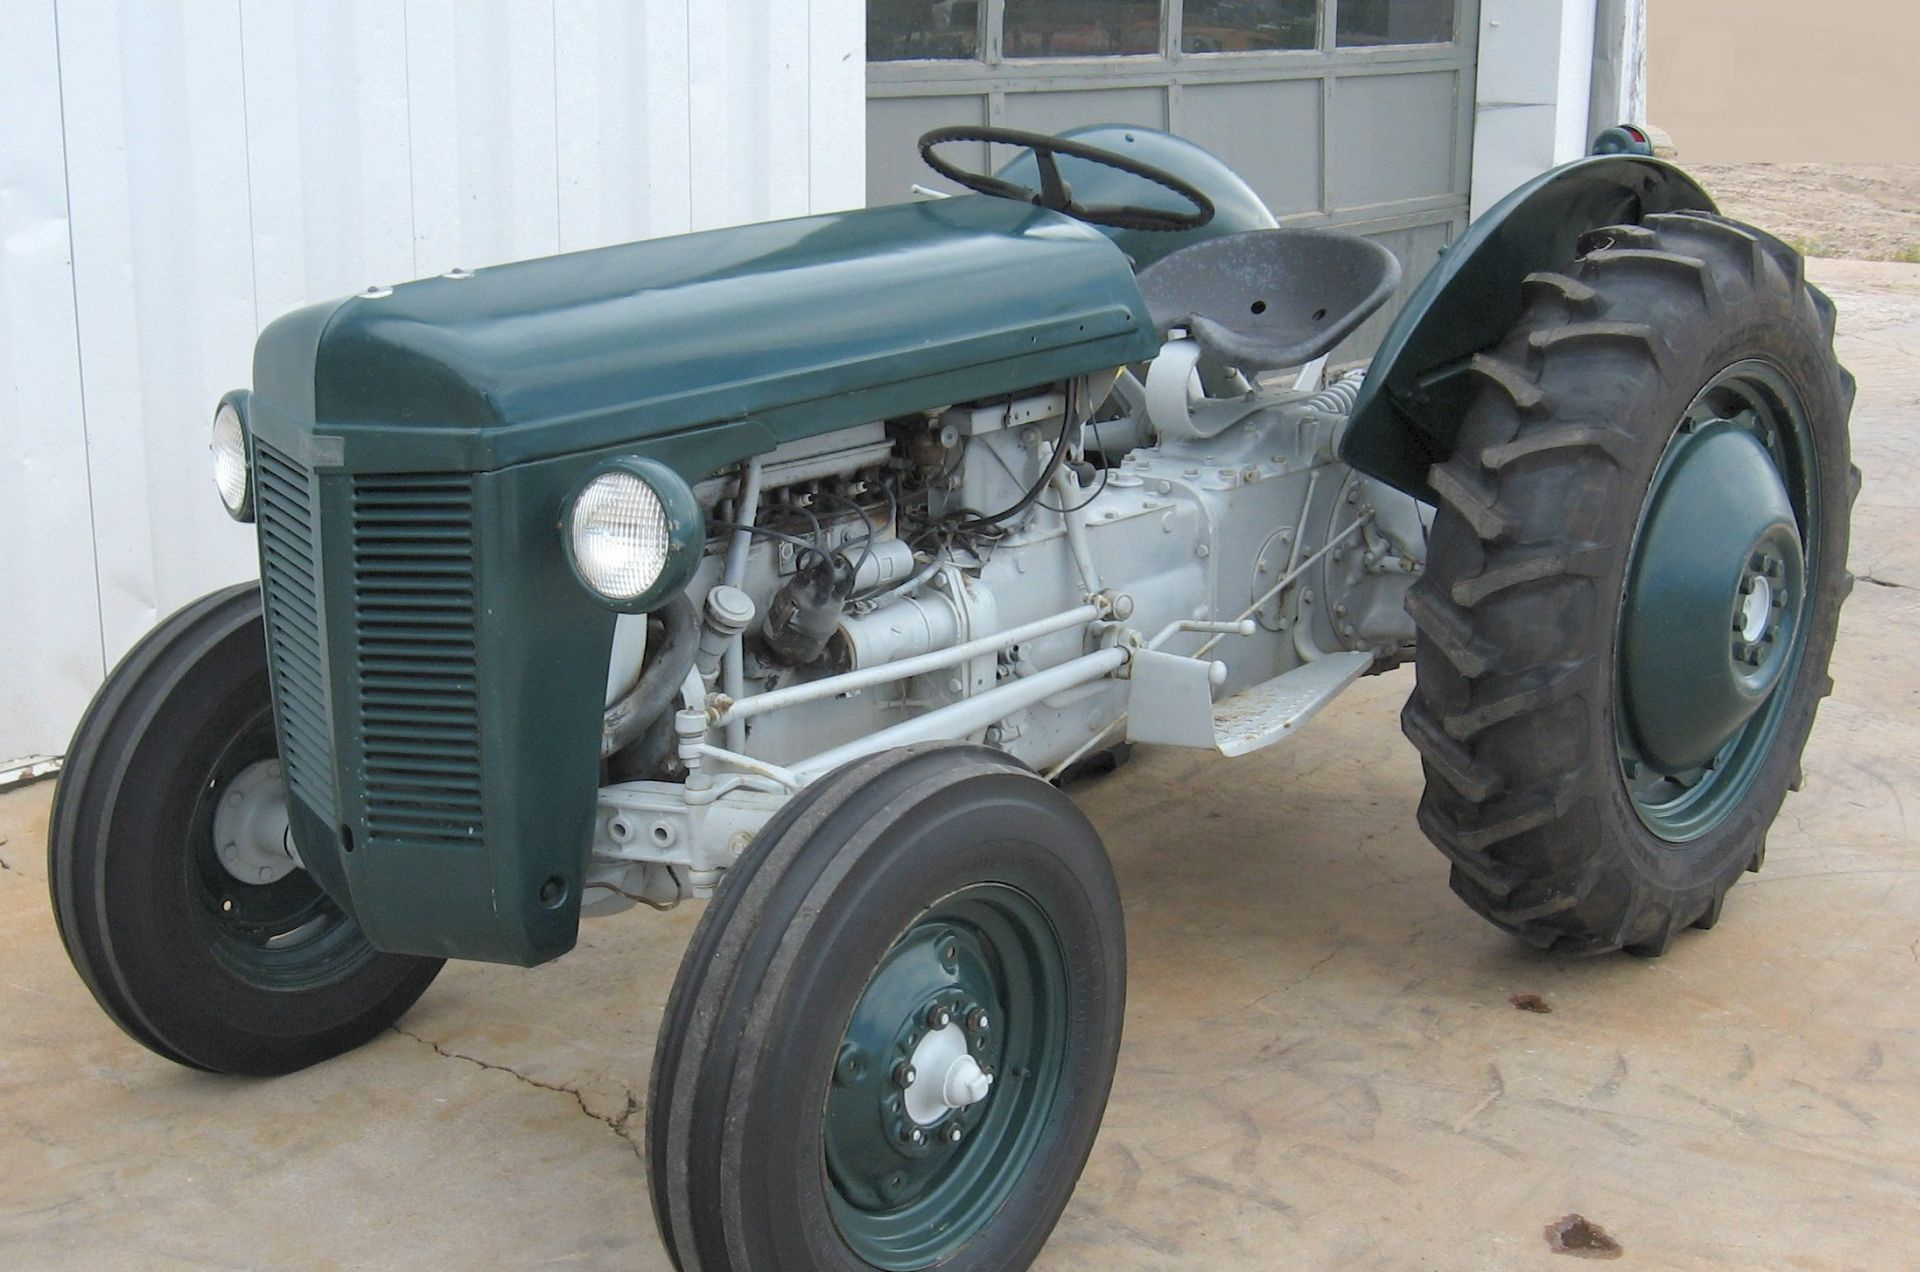 Wiring Diagram For To30 Ferguson Tractor   Wiring Diagram - Massey Ferguson Wiring Diagram